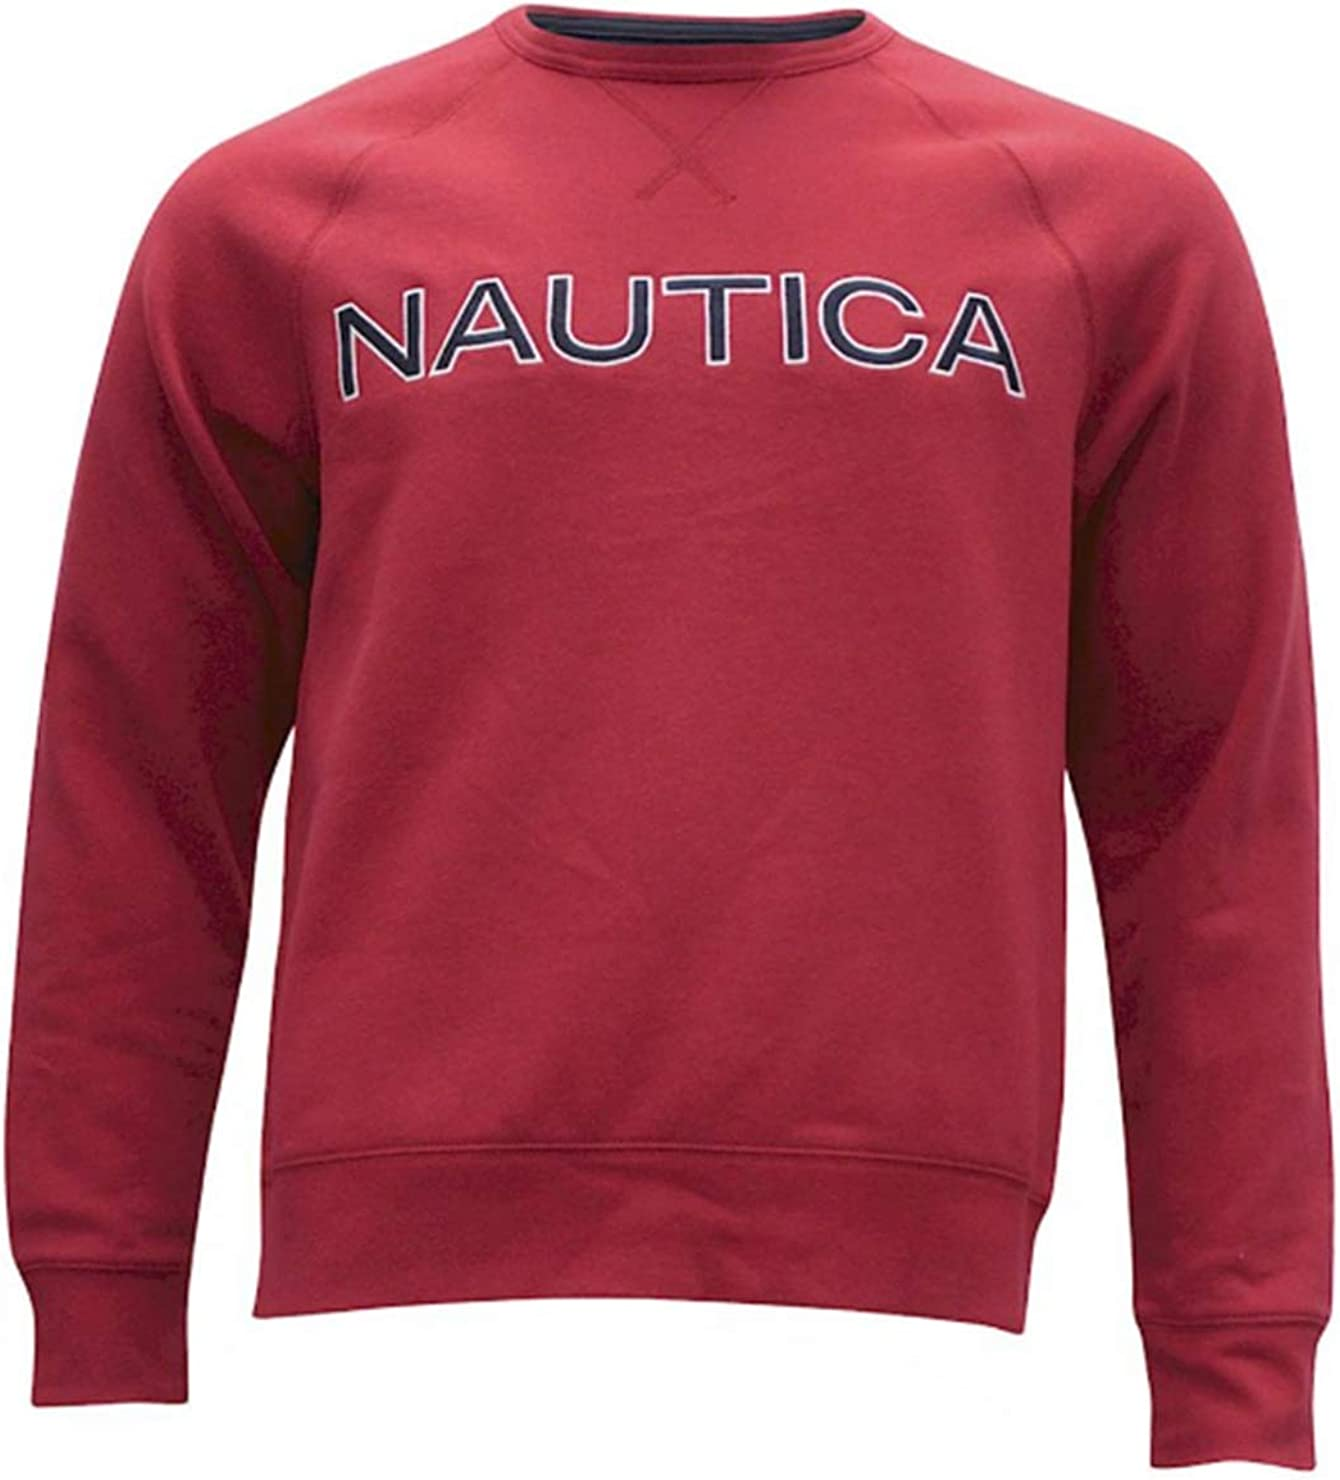 Nautica Men's Fleece Long Sleeve Crew Neck Sweatshirt